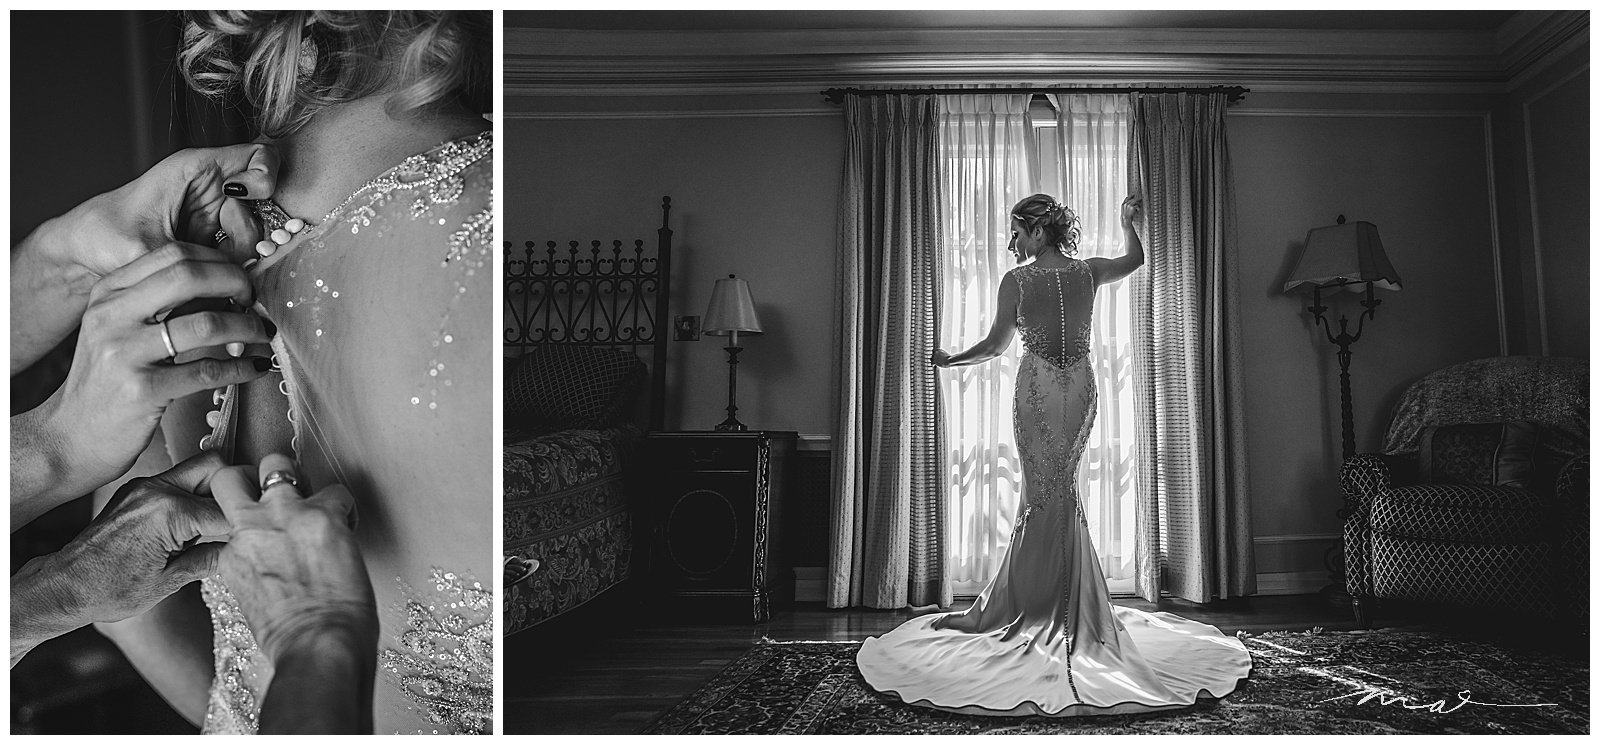 Carondelet House Wedding | Briana and Peter, Michael Anthony Photography Blog: Los Angeles Wedding Photography